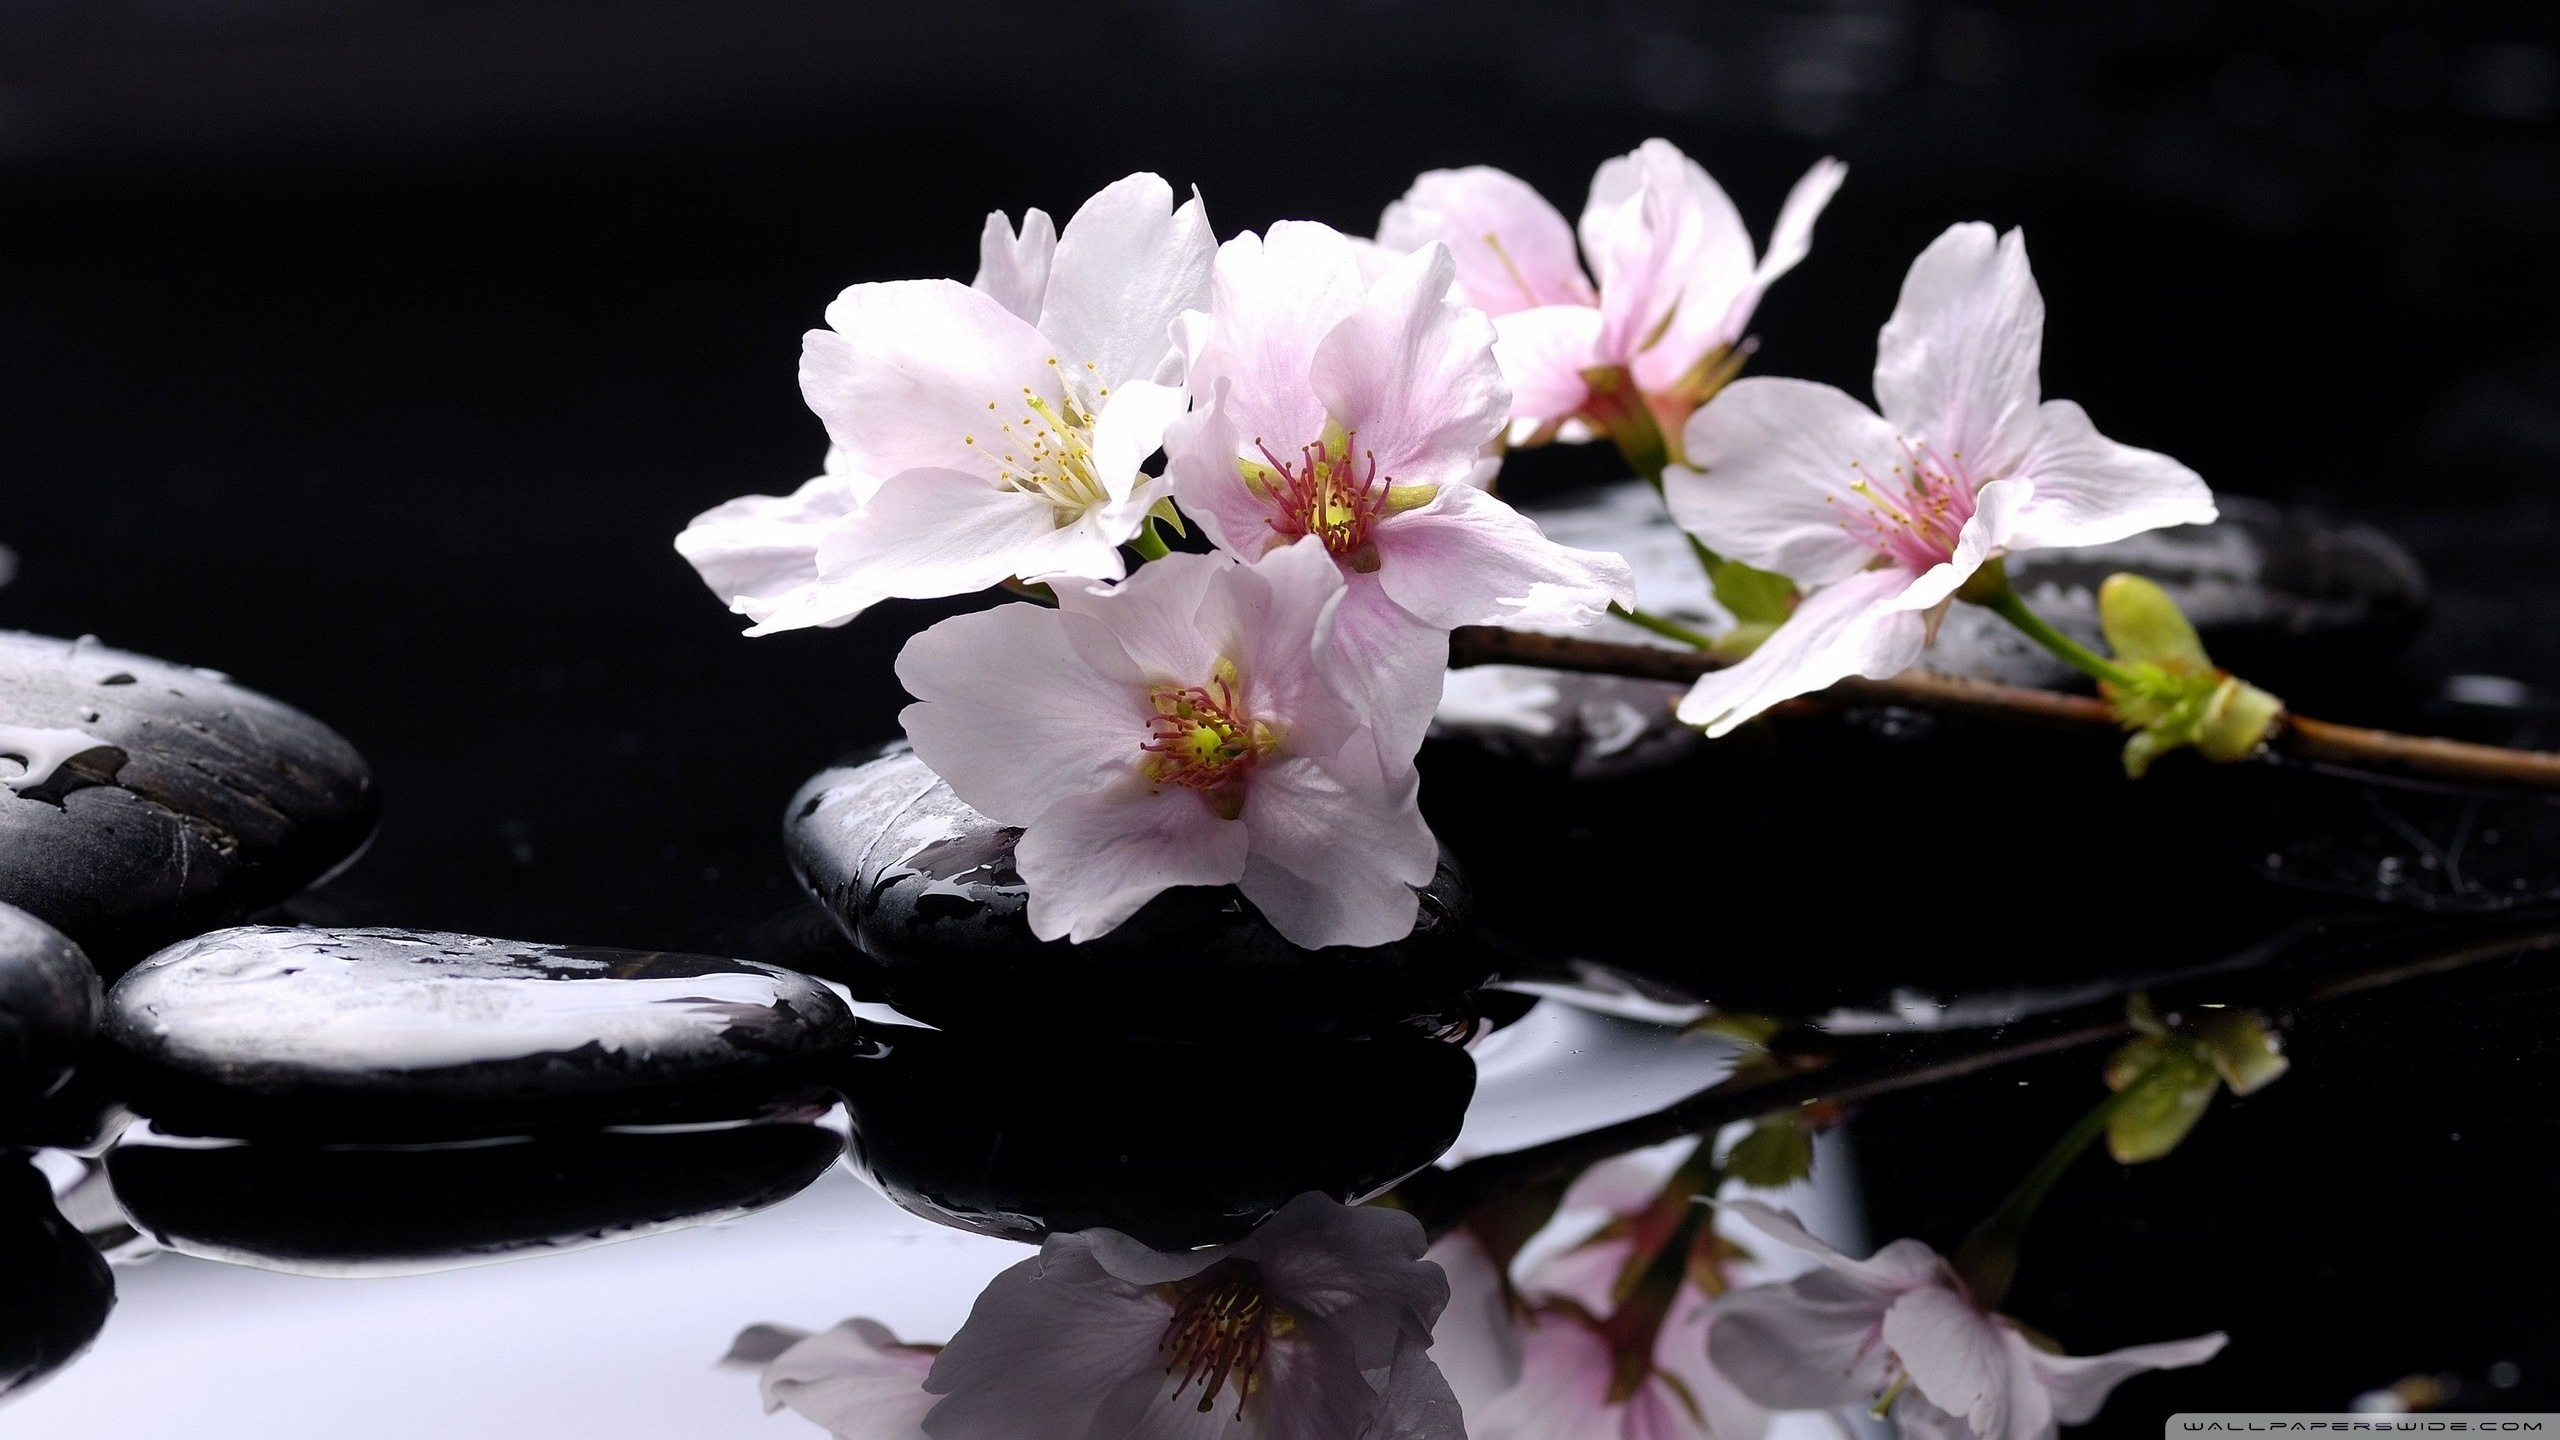 zen_stones_background_2-wallpaper-2560x1440